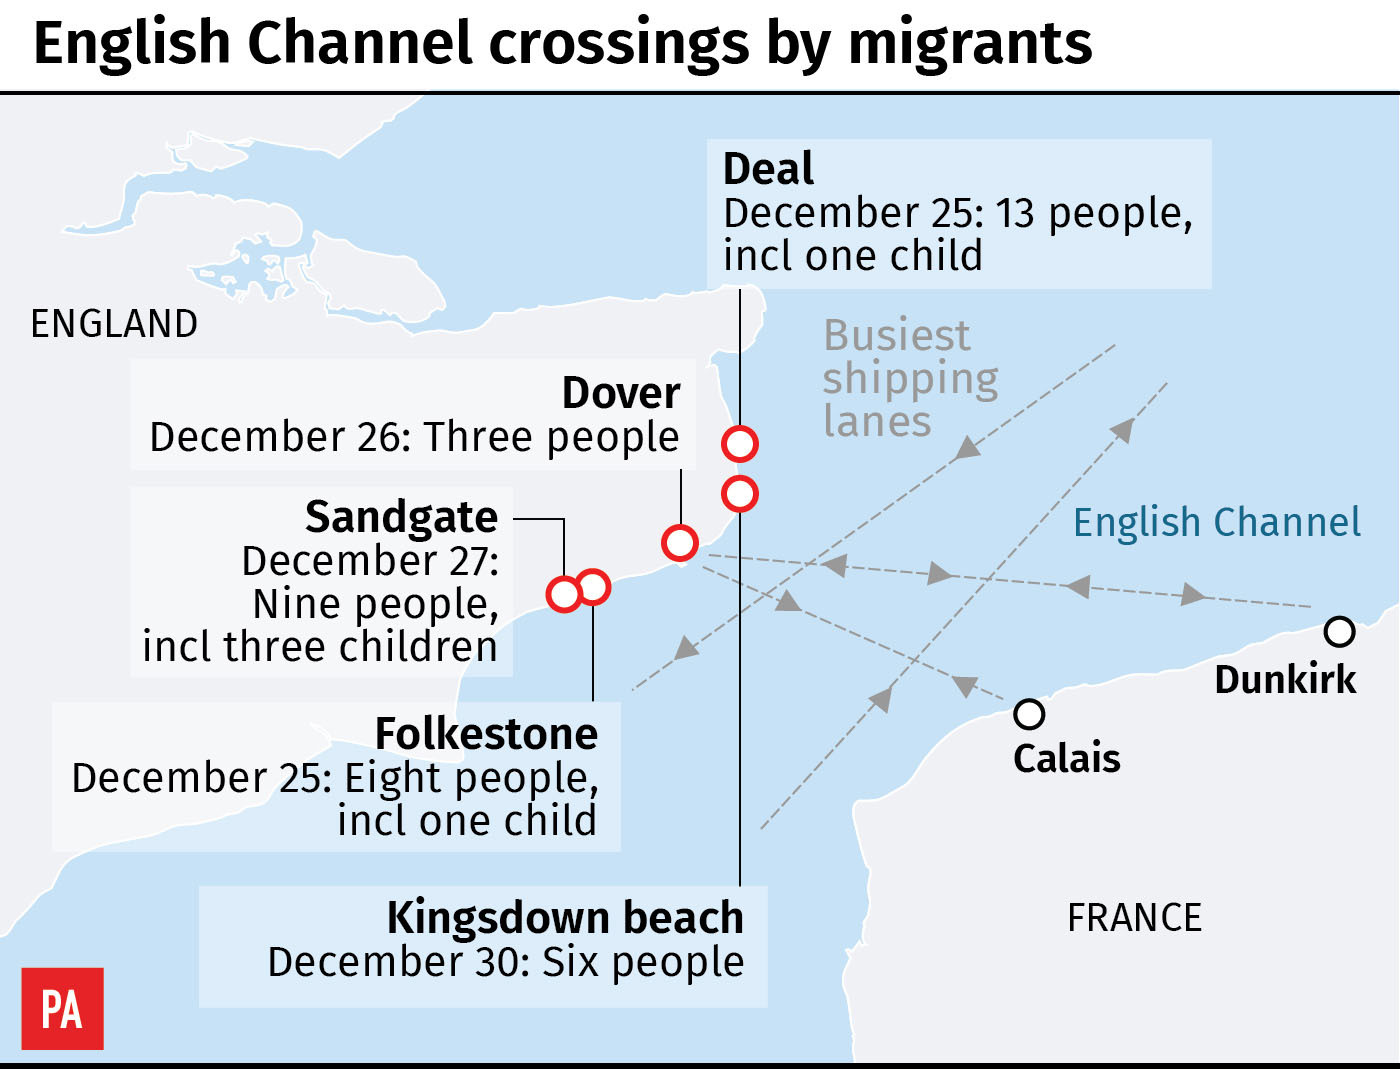 Royal Navy Ship Sent To Patrol English Channel To 'Prevent Migrants Crossing'